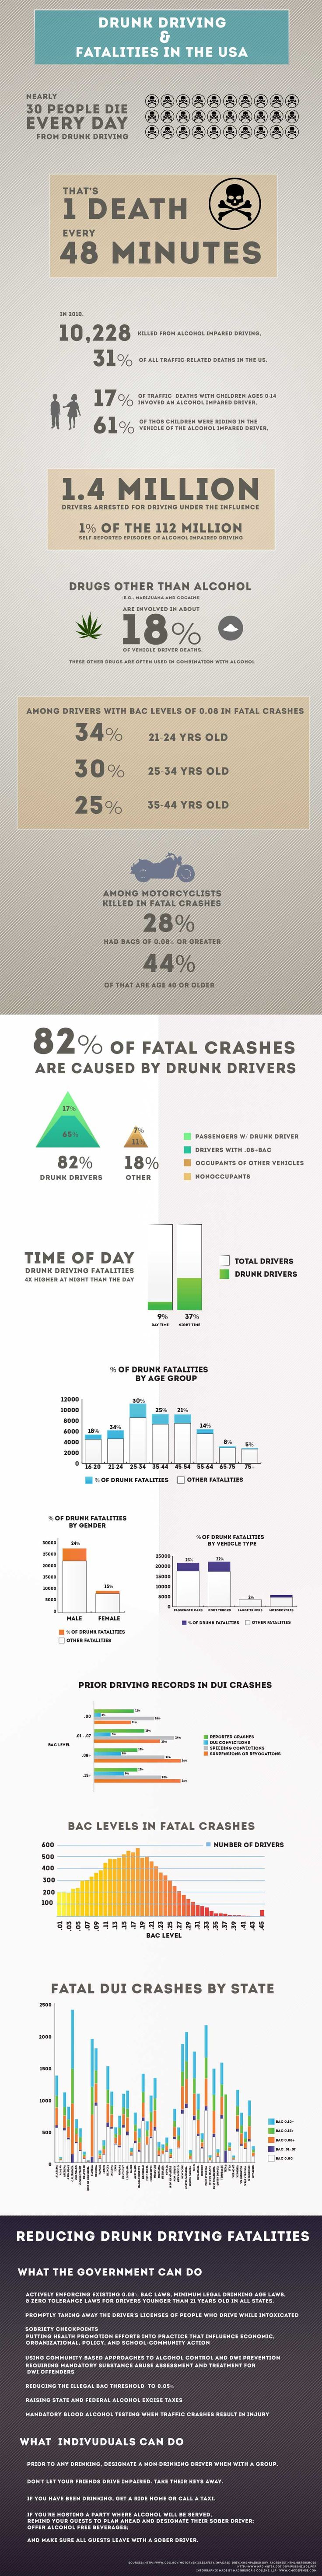 United States Drunk Driving Statistics [Infographic]